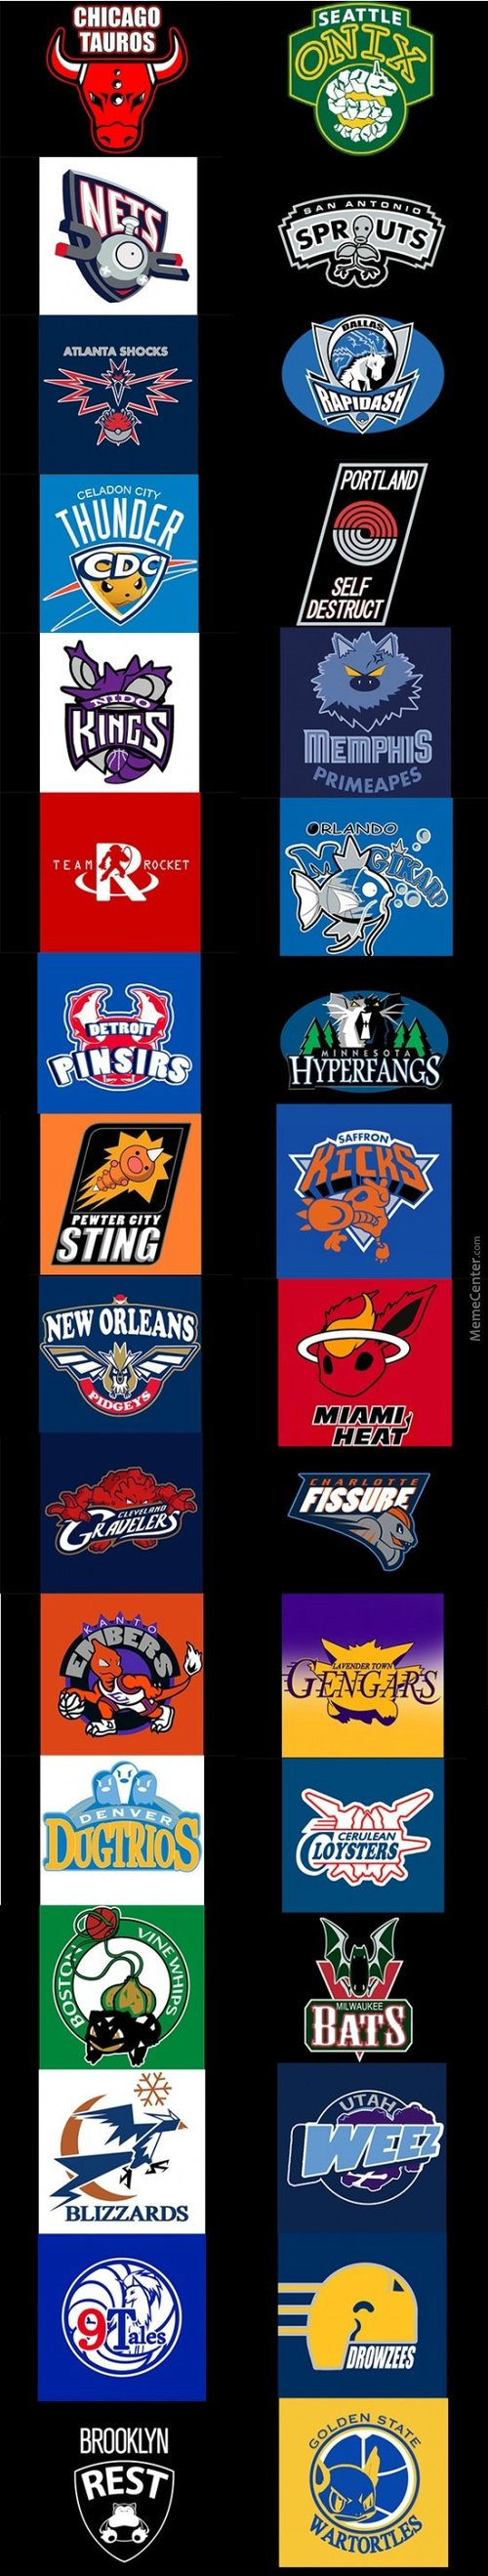 Pokemon Nba Teams